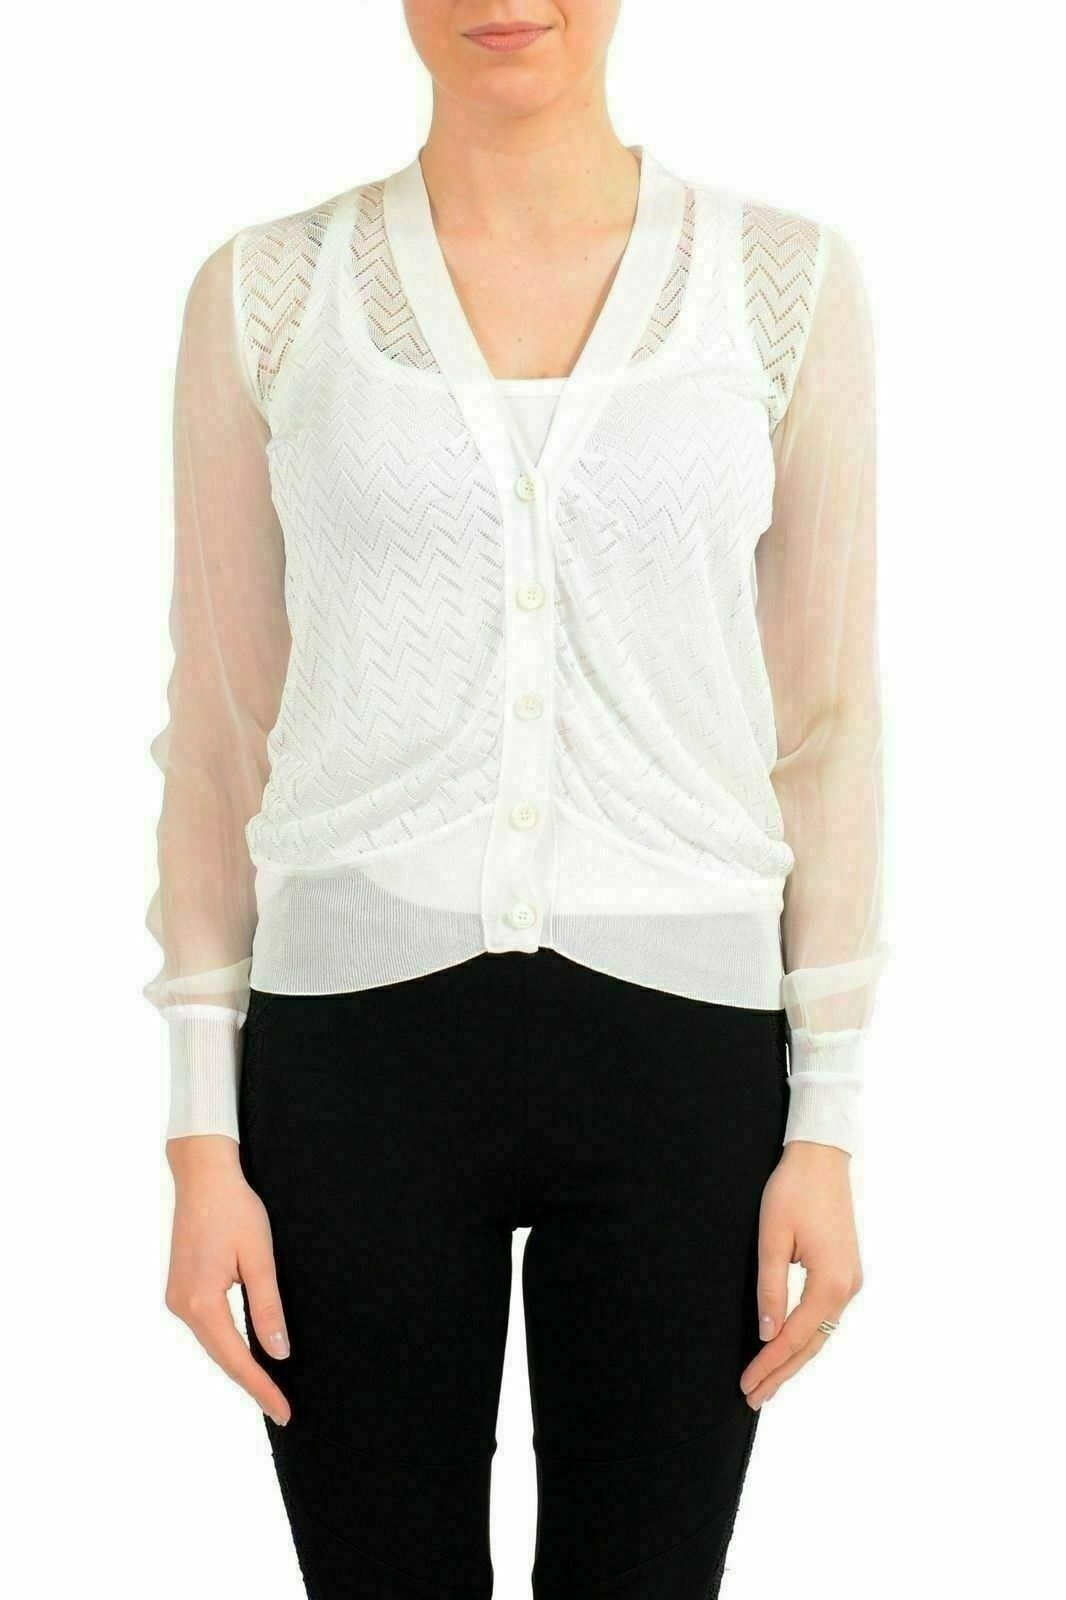 Viktor & Rolf Women's Silk White See Through Cardigan Light Sweater US S IT 40